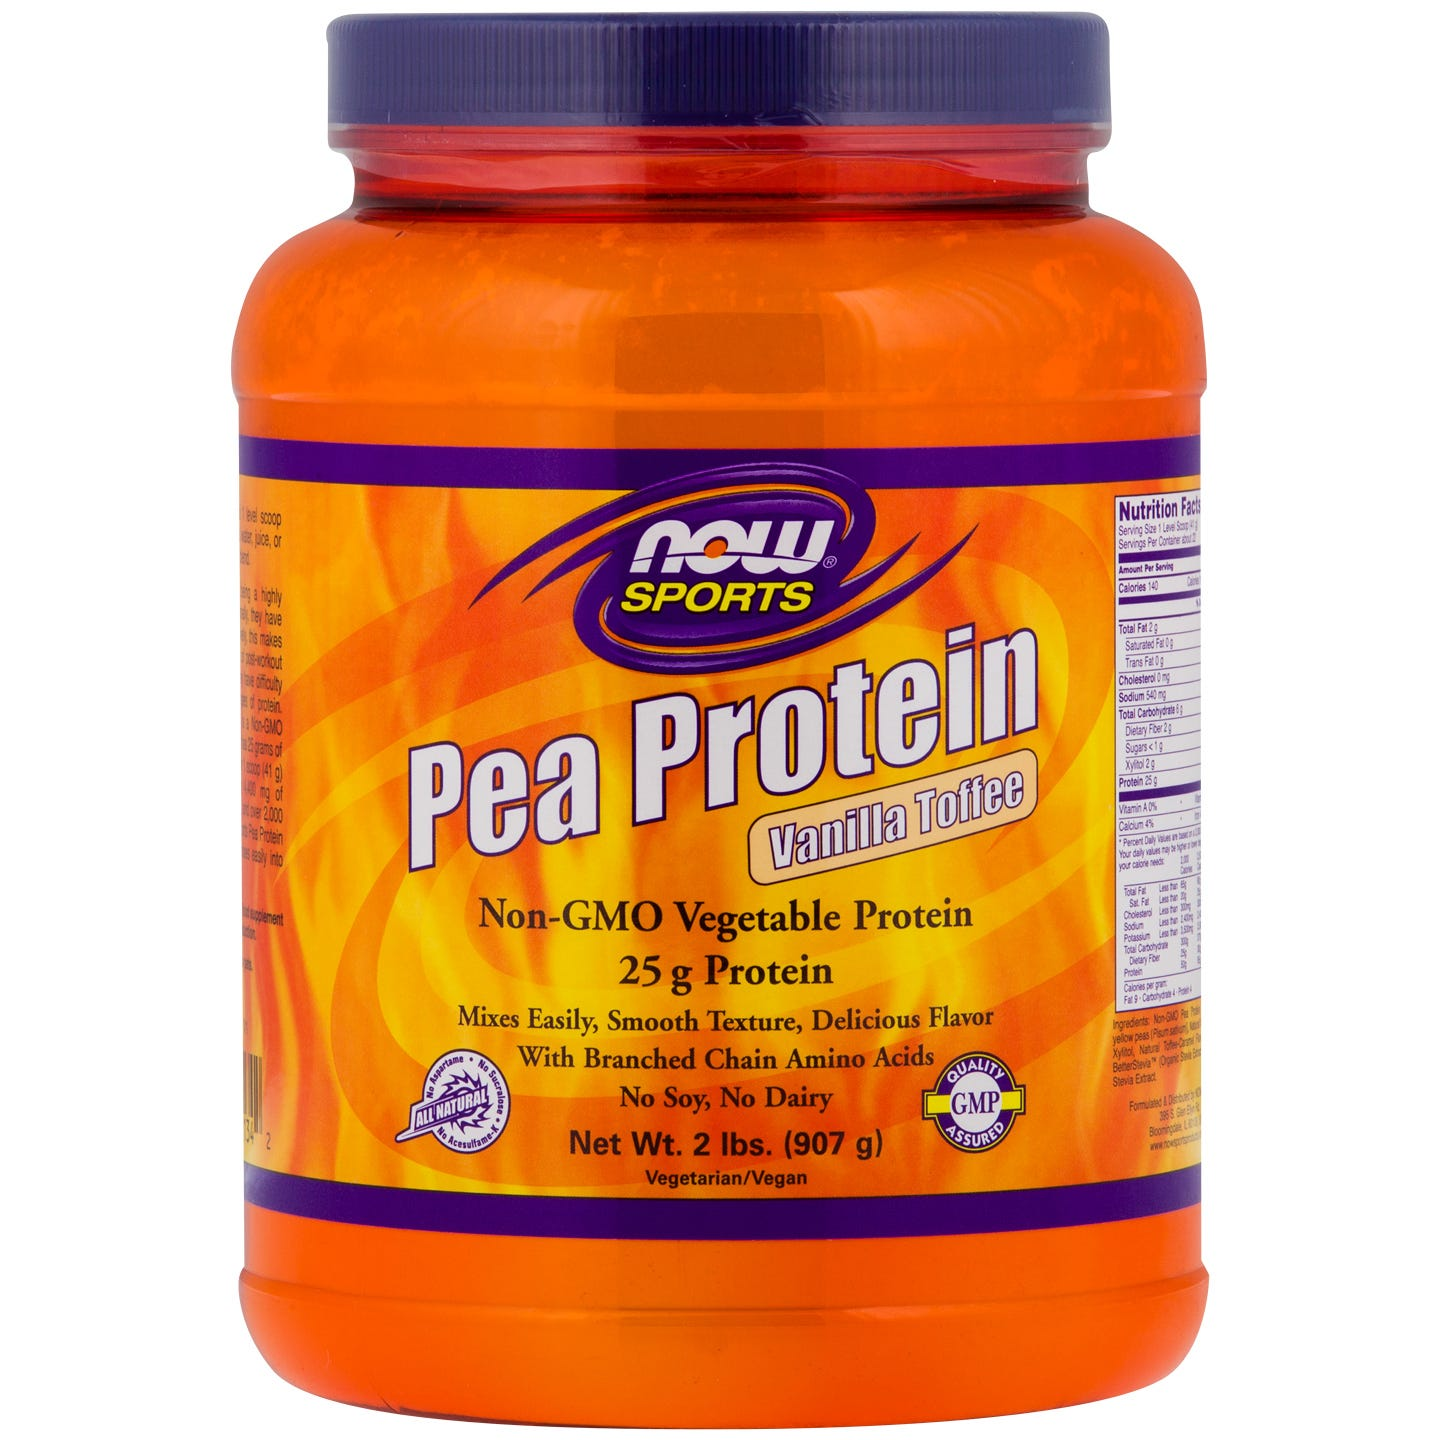 Sports Pea Protein Vanilla Toffee 2lb, NOW Foods - Rapid Diet Weight Loss Products Shop